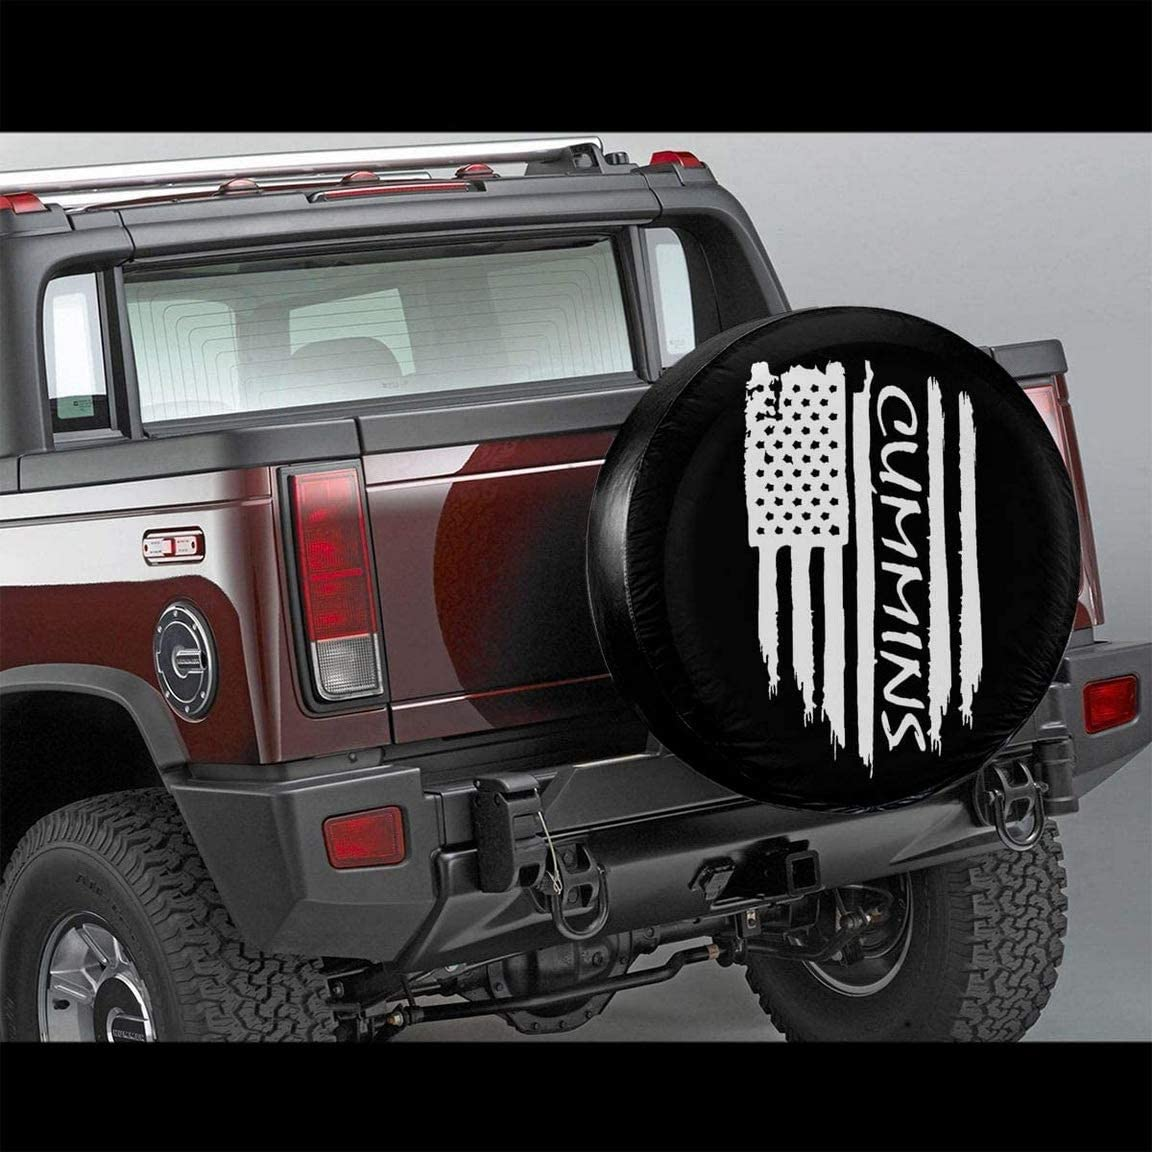 WENQING American Flag Mason Masonic Spare Tire Cover Dustproof Universal Wheel Tire Covers Protective Car Accessories for Trailer RV SUV Truck Vehicles